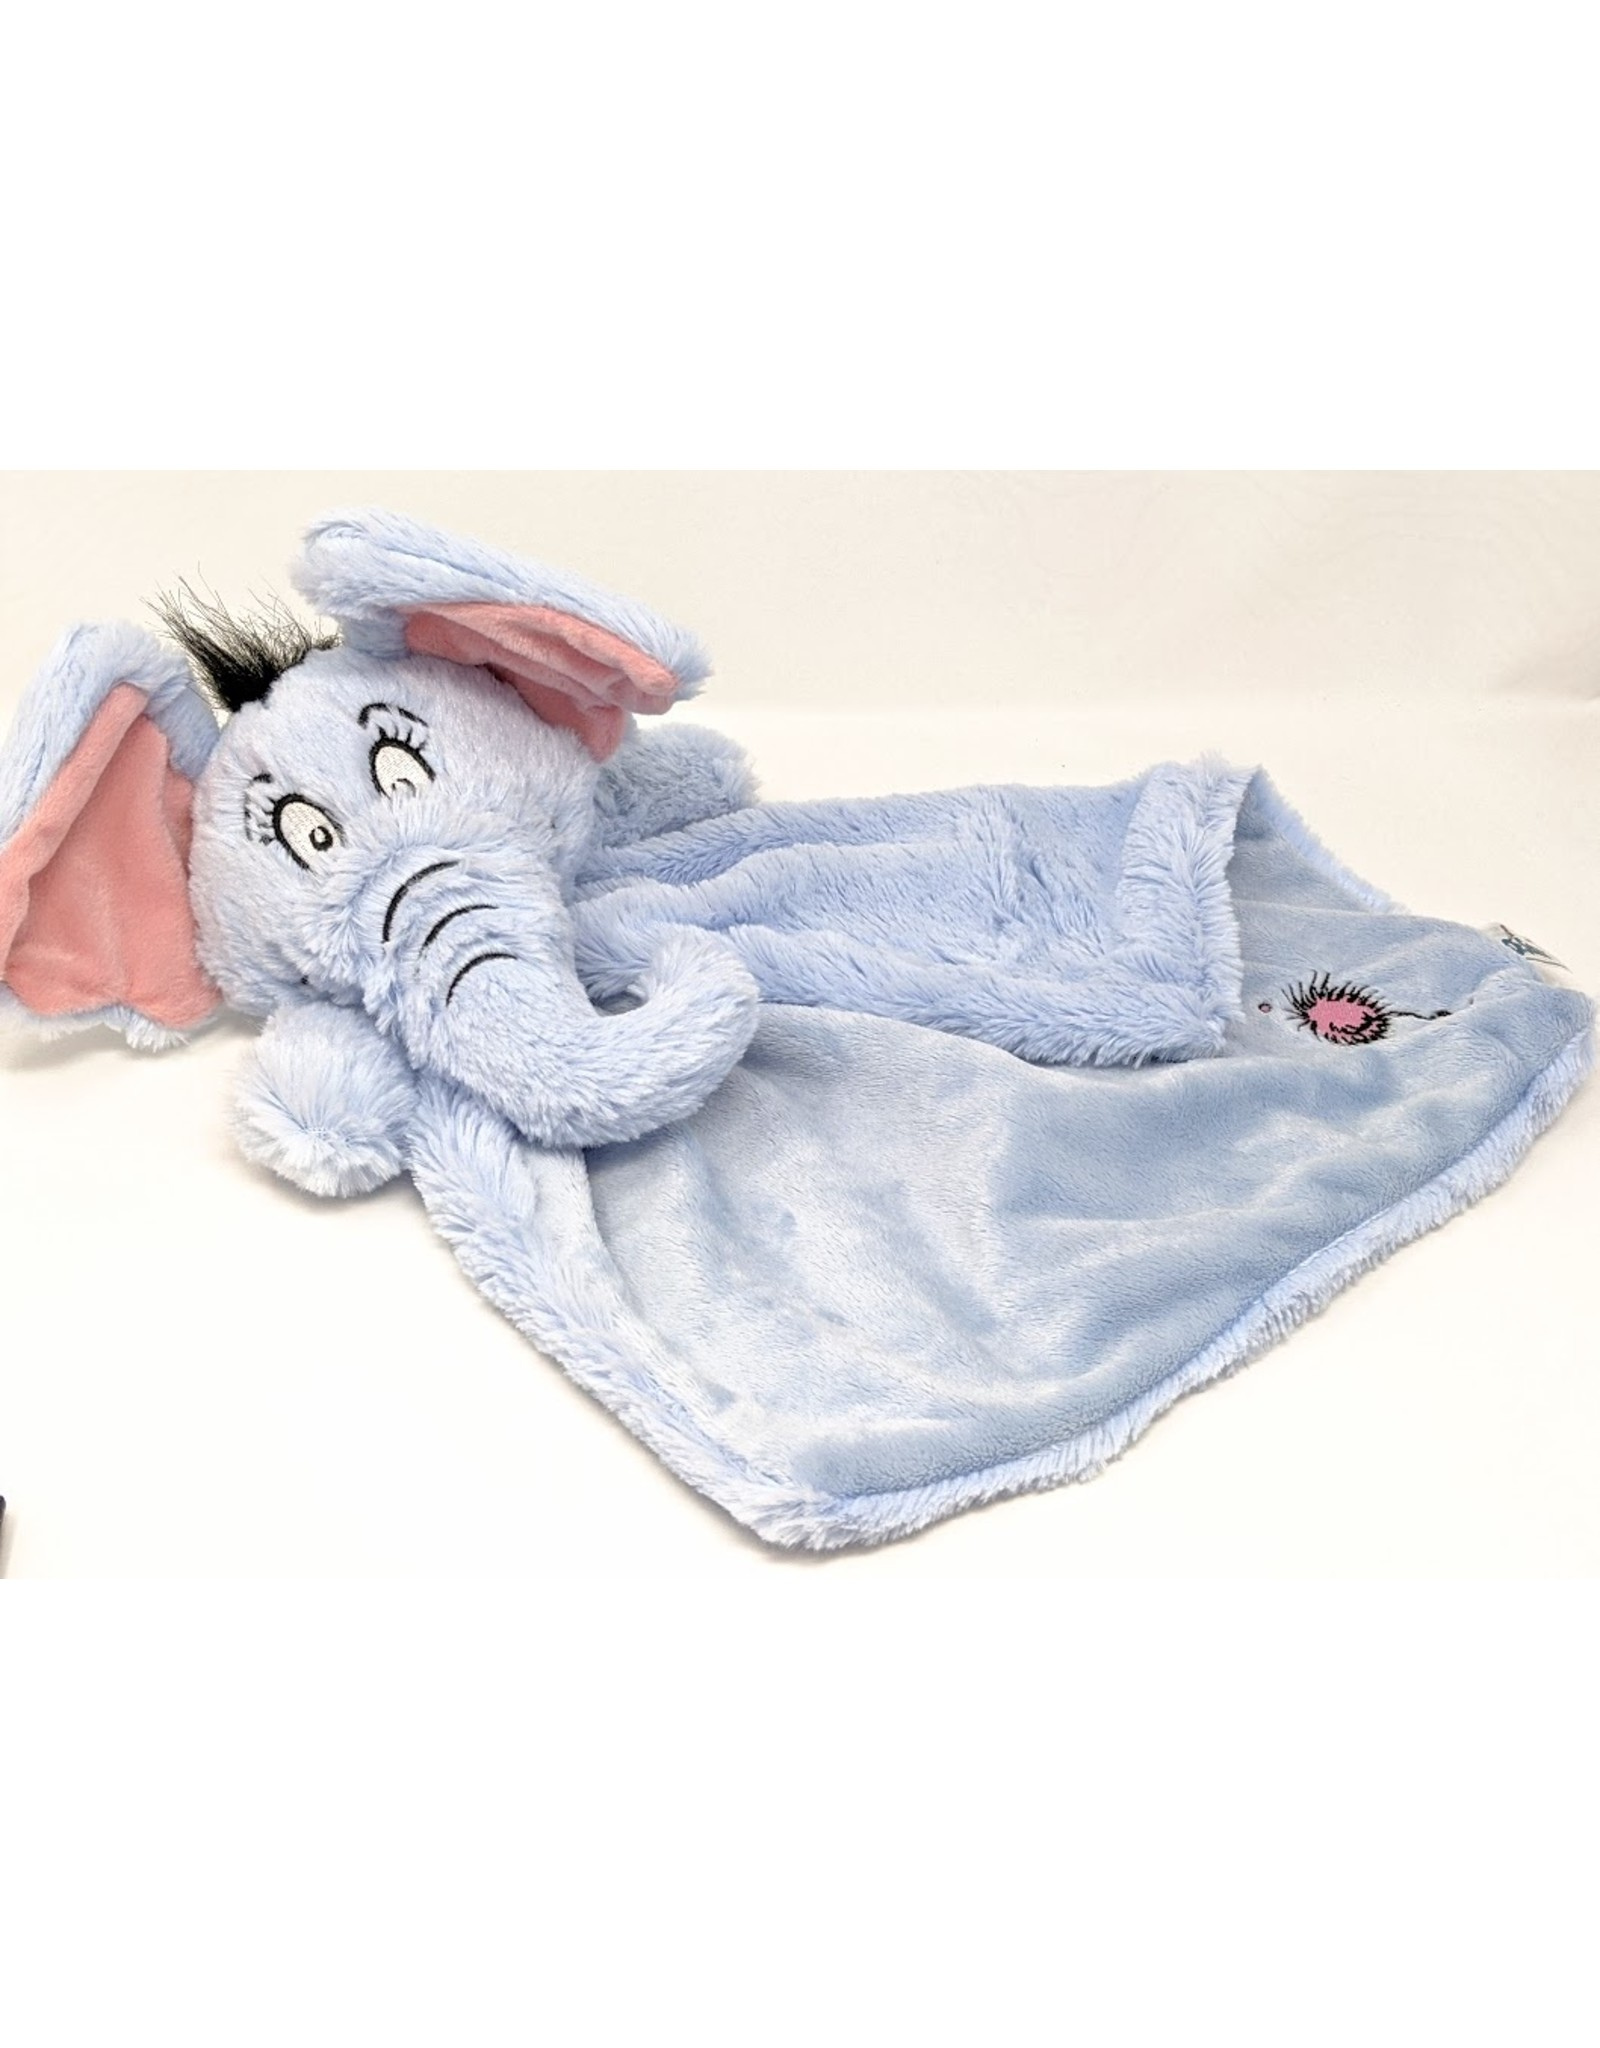 Dr. Seuss Dr. Seuss Gift Package - Horton Hears A Who with luvster